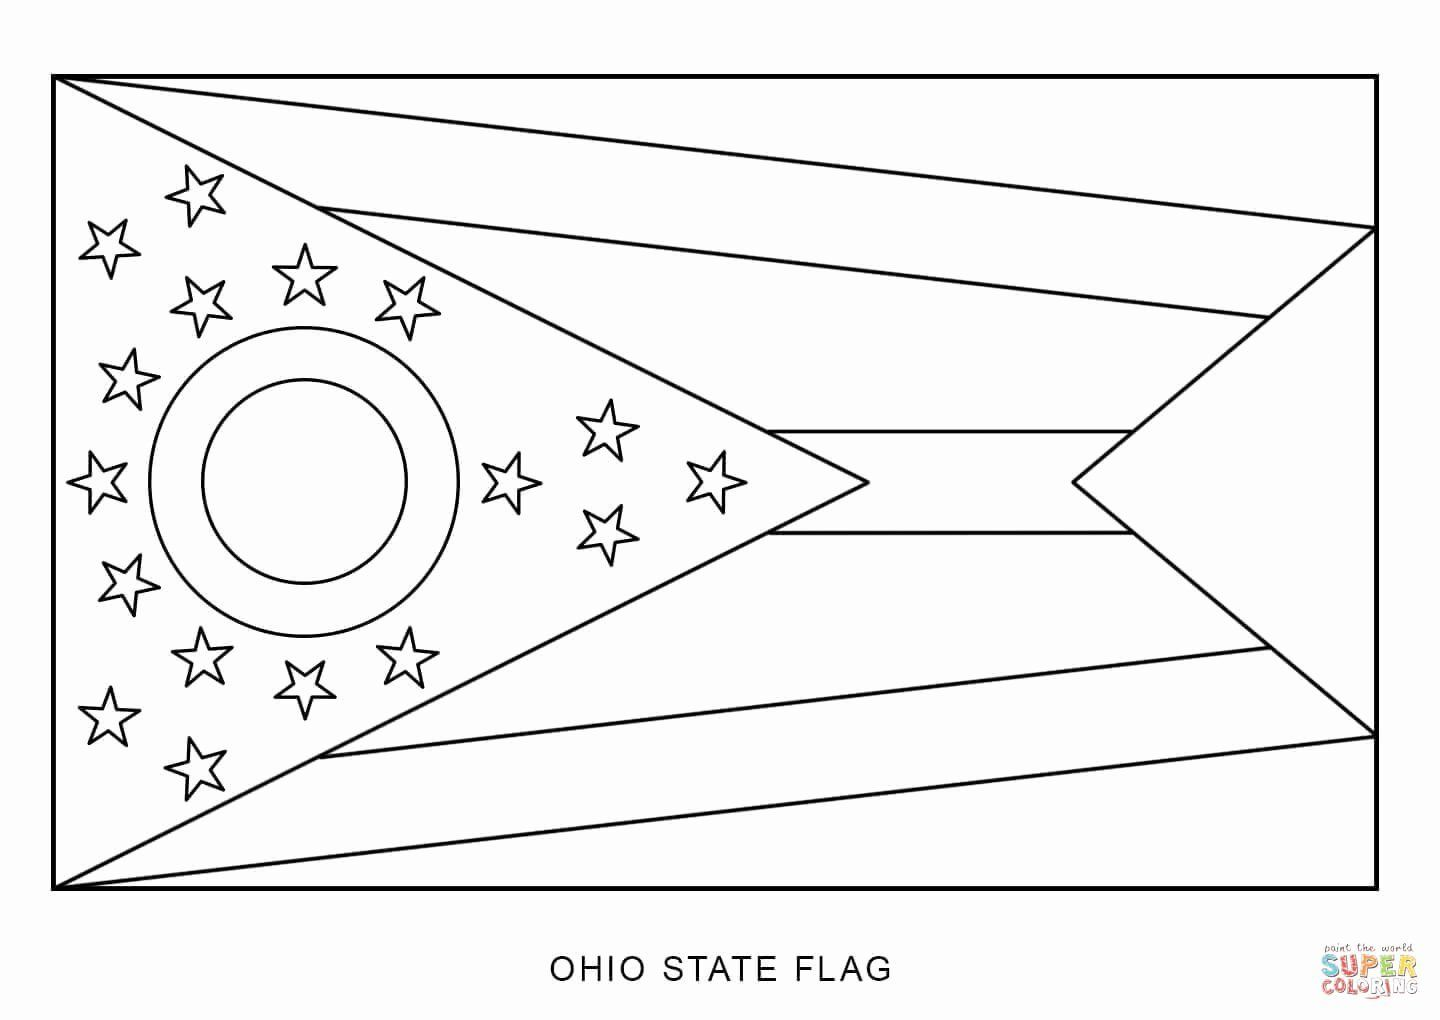 Pa State Flag Coloring Page In 2020 Ohio State Flag Coloring Pages